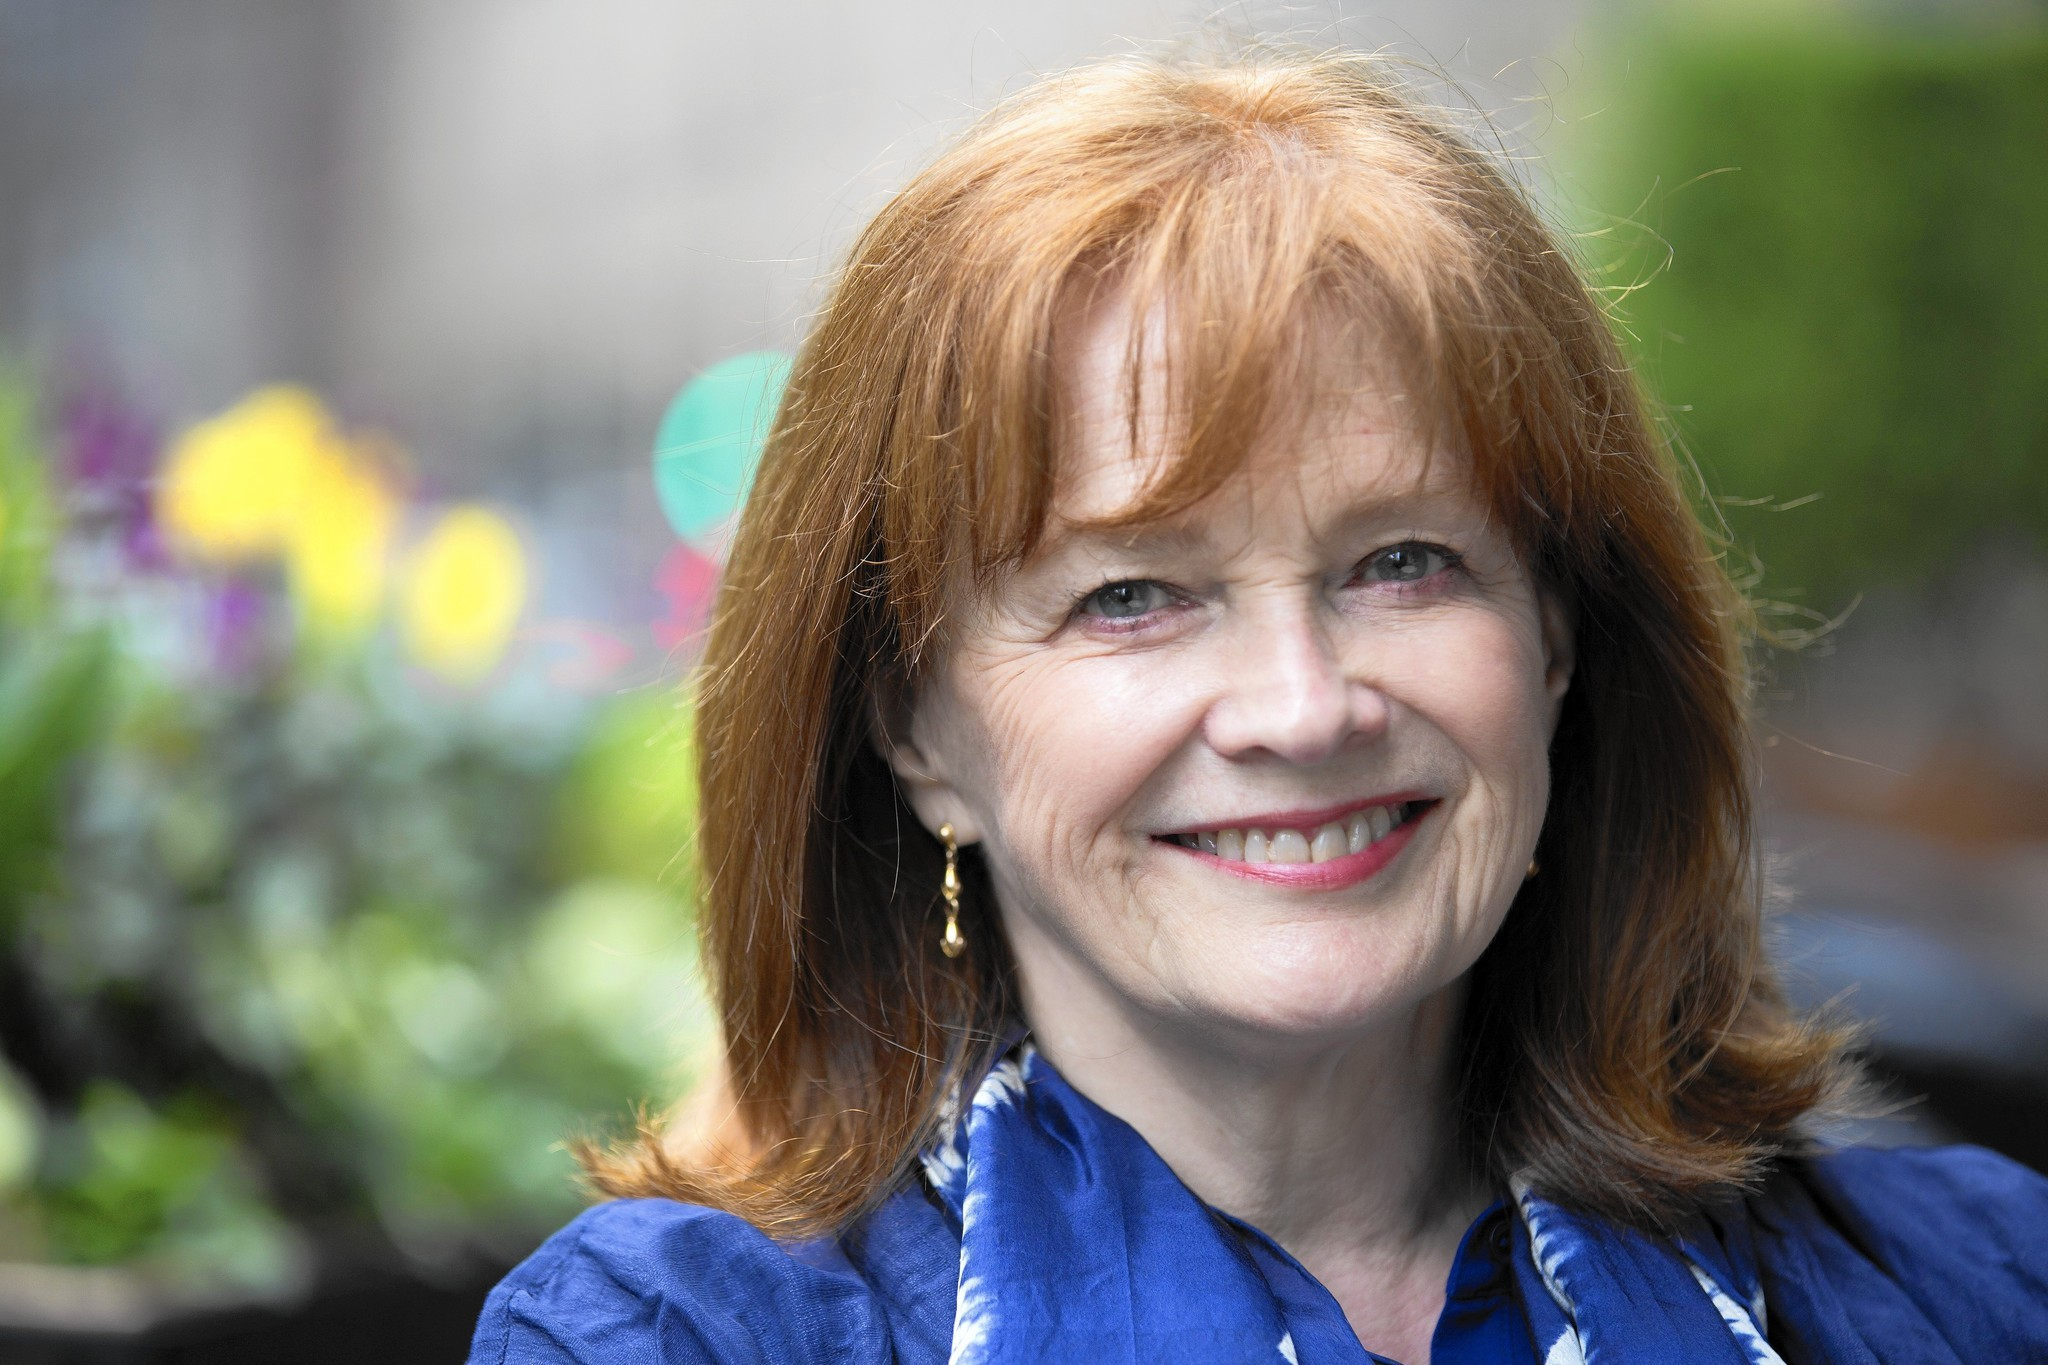 Blair Brown imdb